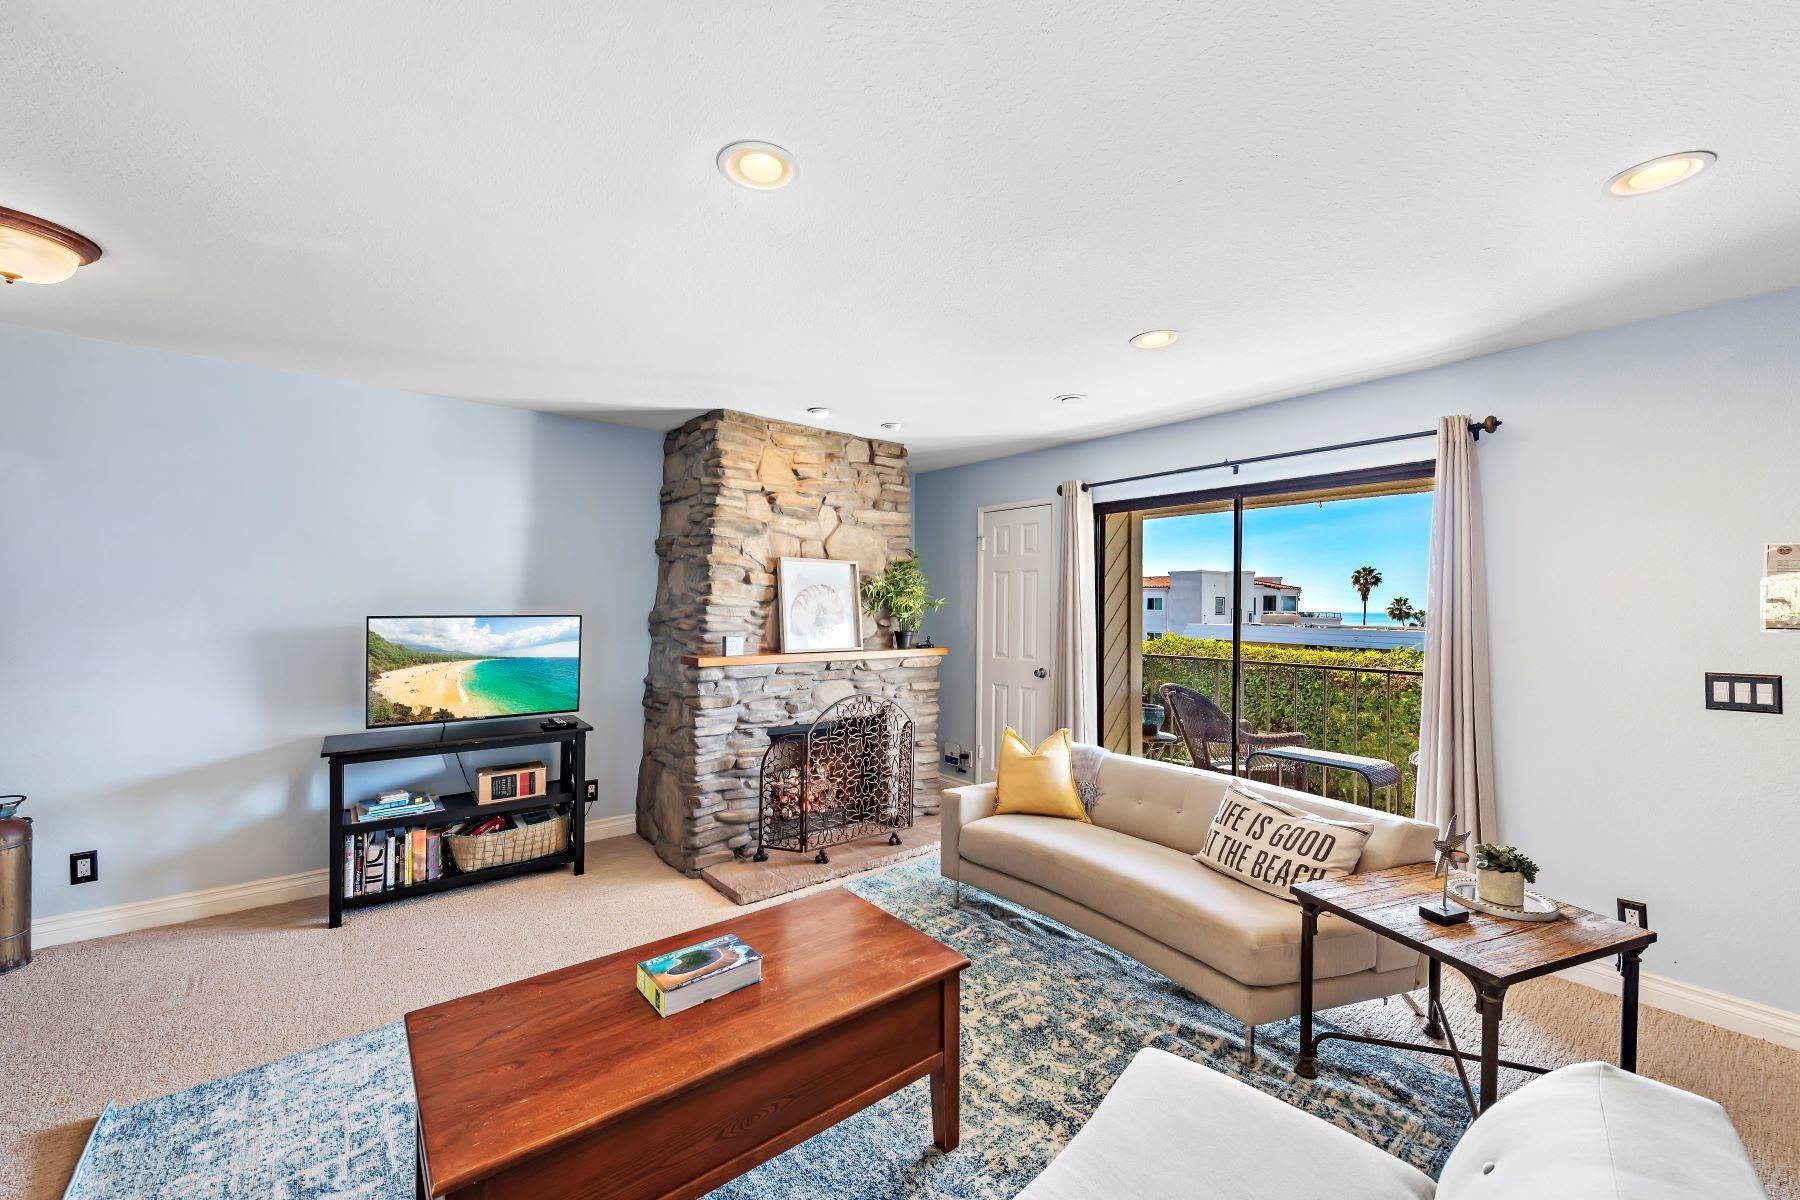 12. Condominiums for Sale at 321 Acebo Lane Unit #C, San Clemente, CA 92672 321 Acebo Lane, Unit #C San Clemente, California 92672 United States